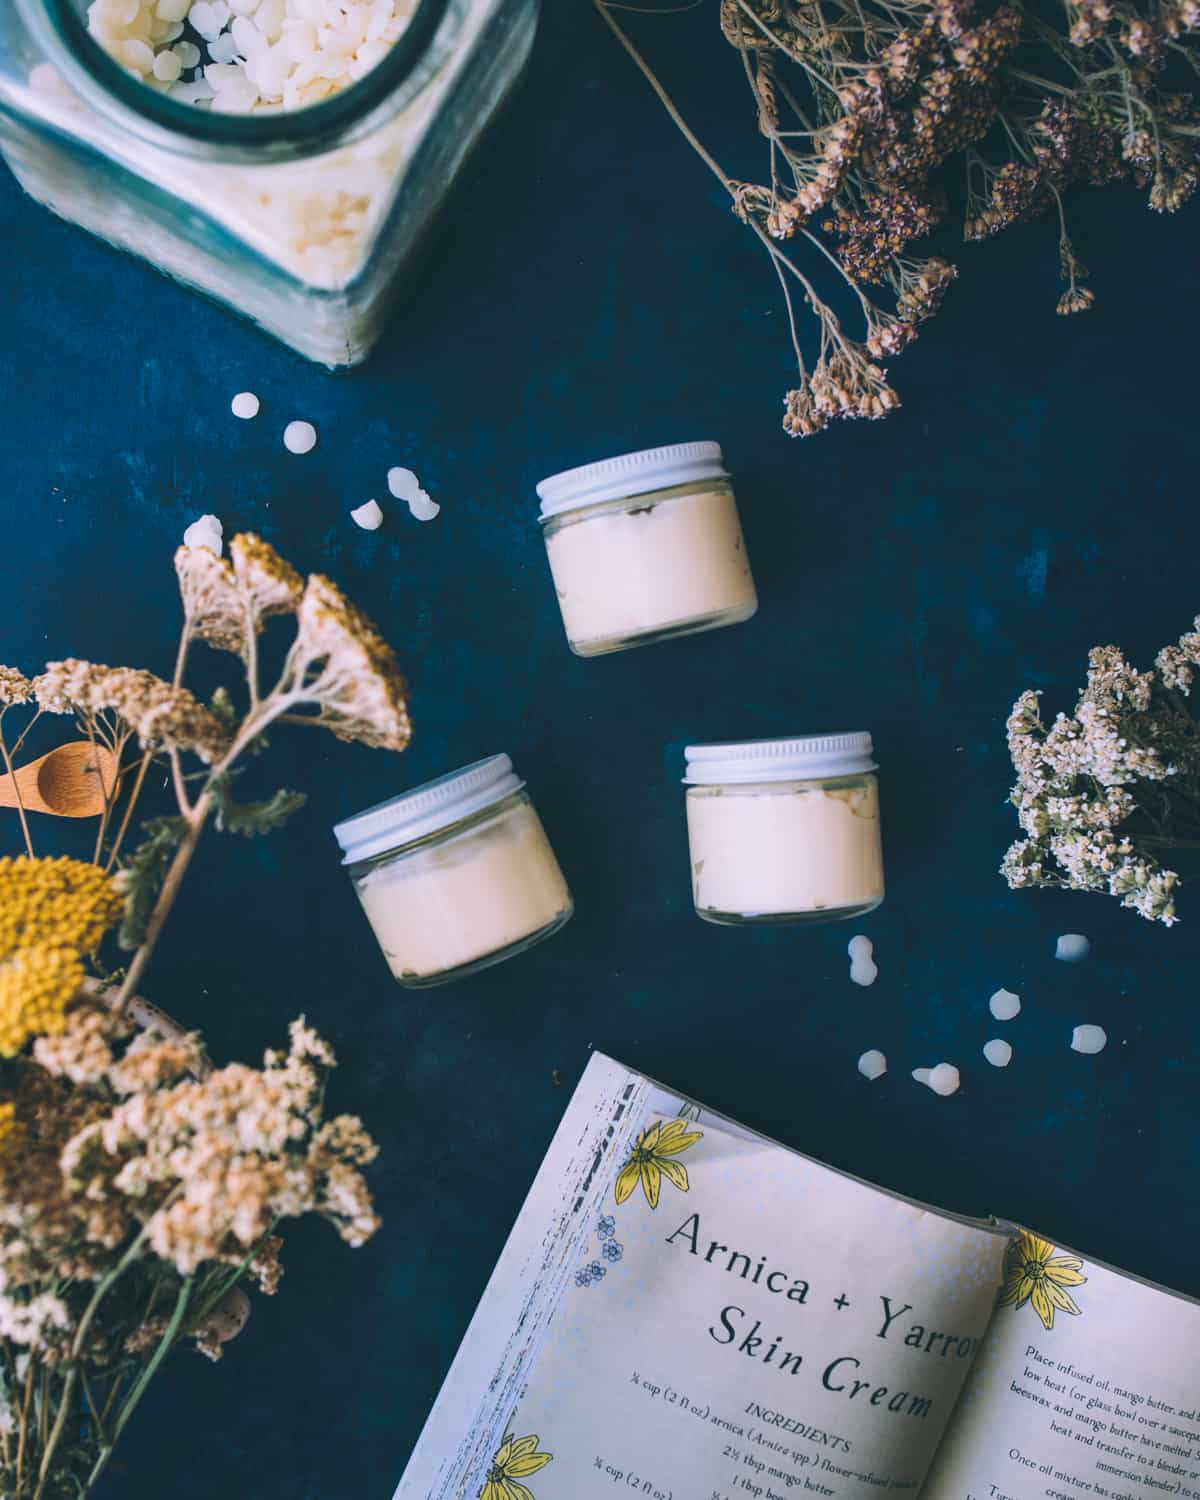 3 small jars with lids on, resting on their sides and filled with arnica and yarrow cream. On a navy blue countertop surrounded by the recipe book open to the page showing arnica and yarrow skin cream recipe, and dried yarrow flowers.